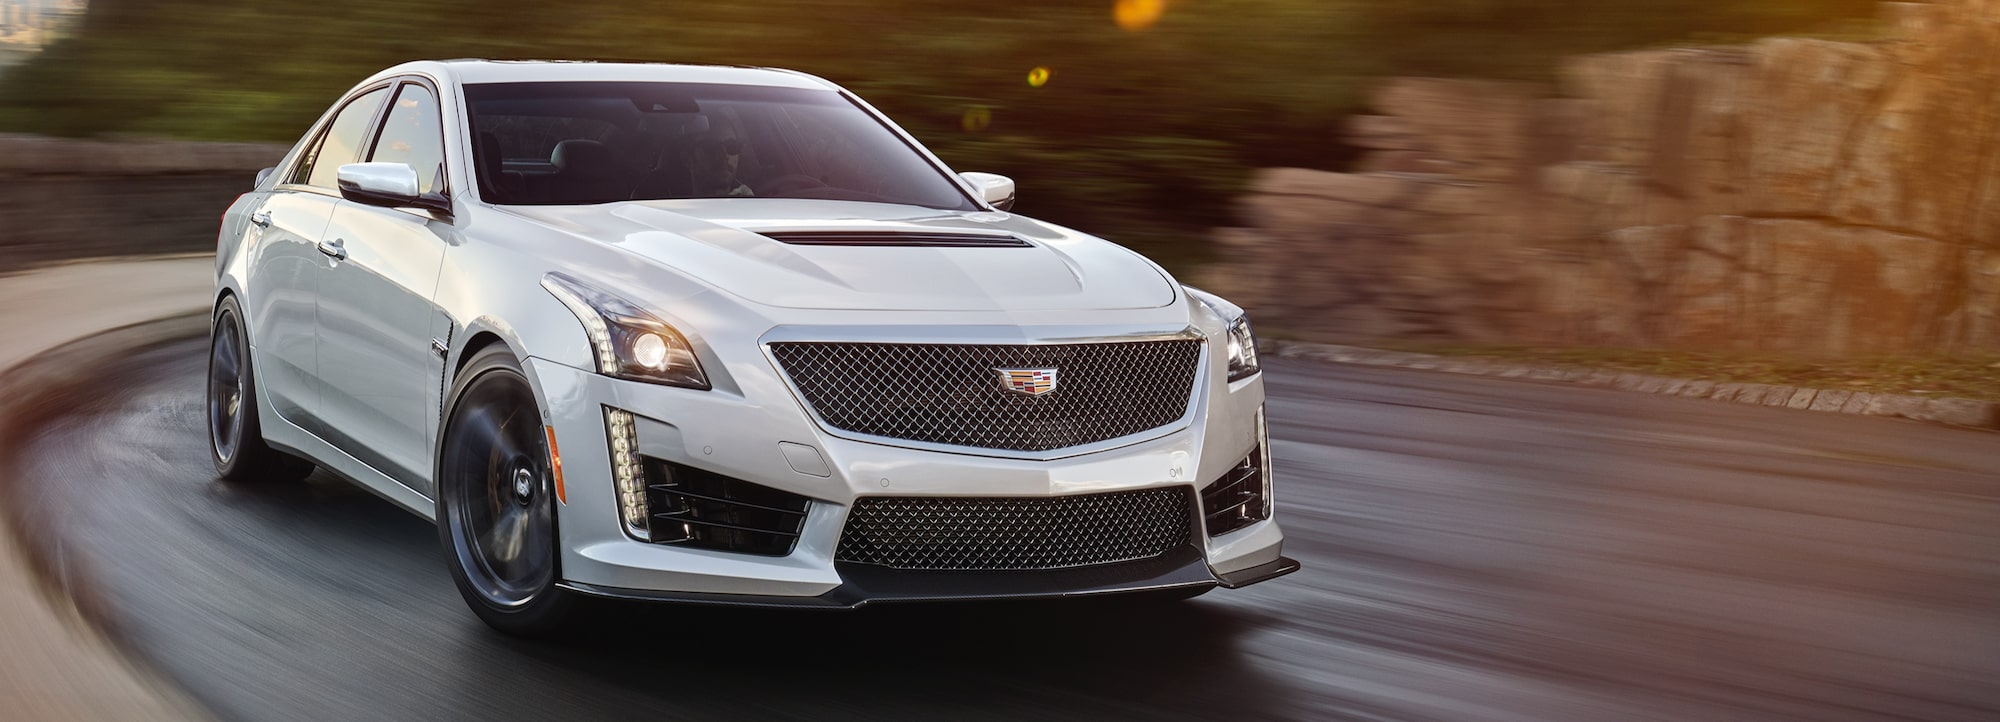 medium resolution of cts v driving on the road